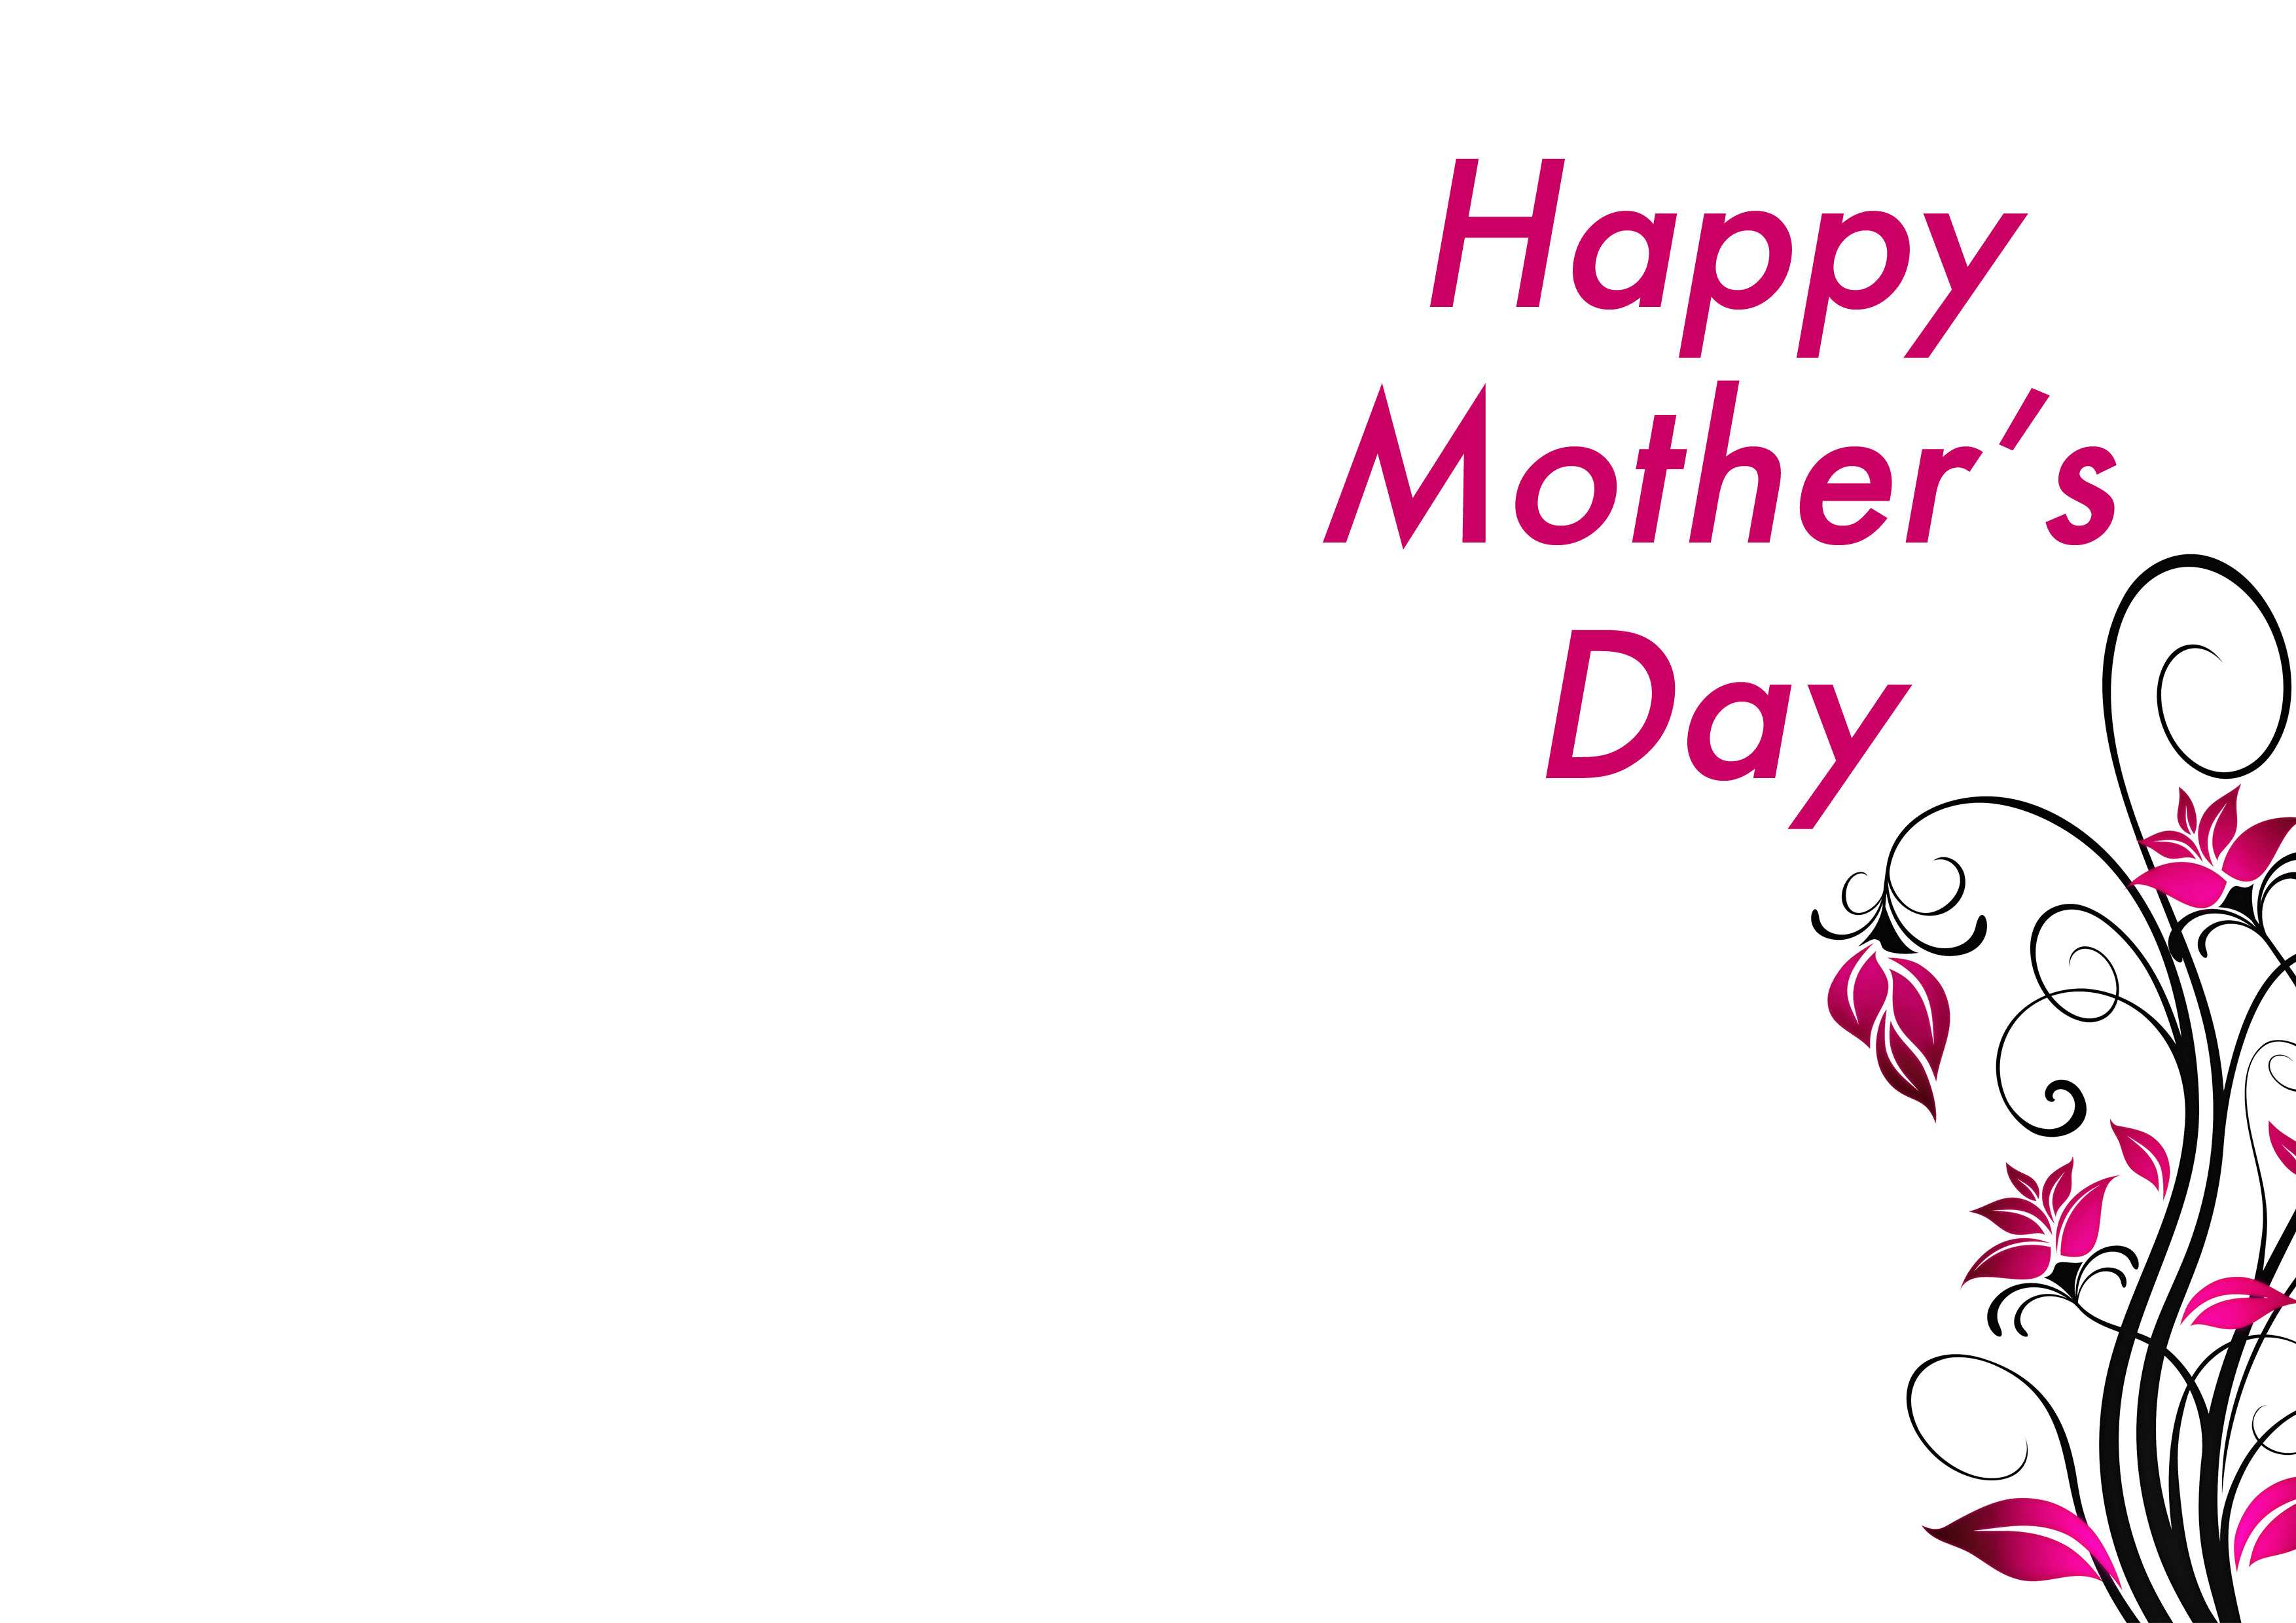 24 Free Printable Mothers Day Greeting Card Template In Photoshop By Printable Mothers Day Greeting Card Template Cards Design Templates